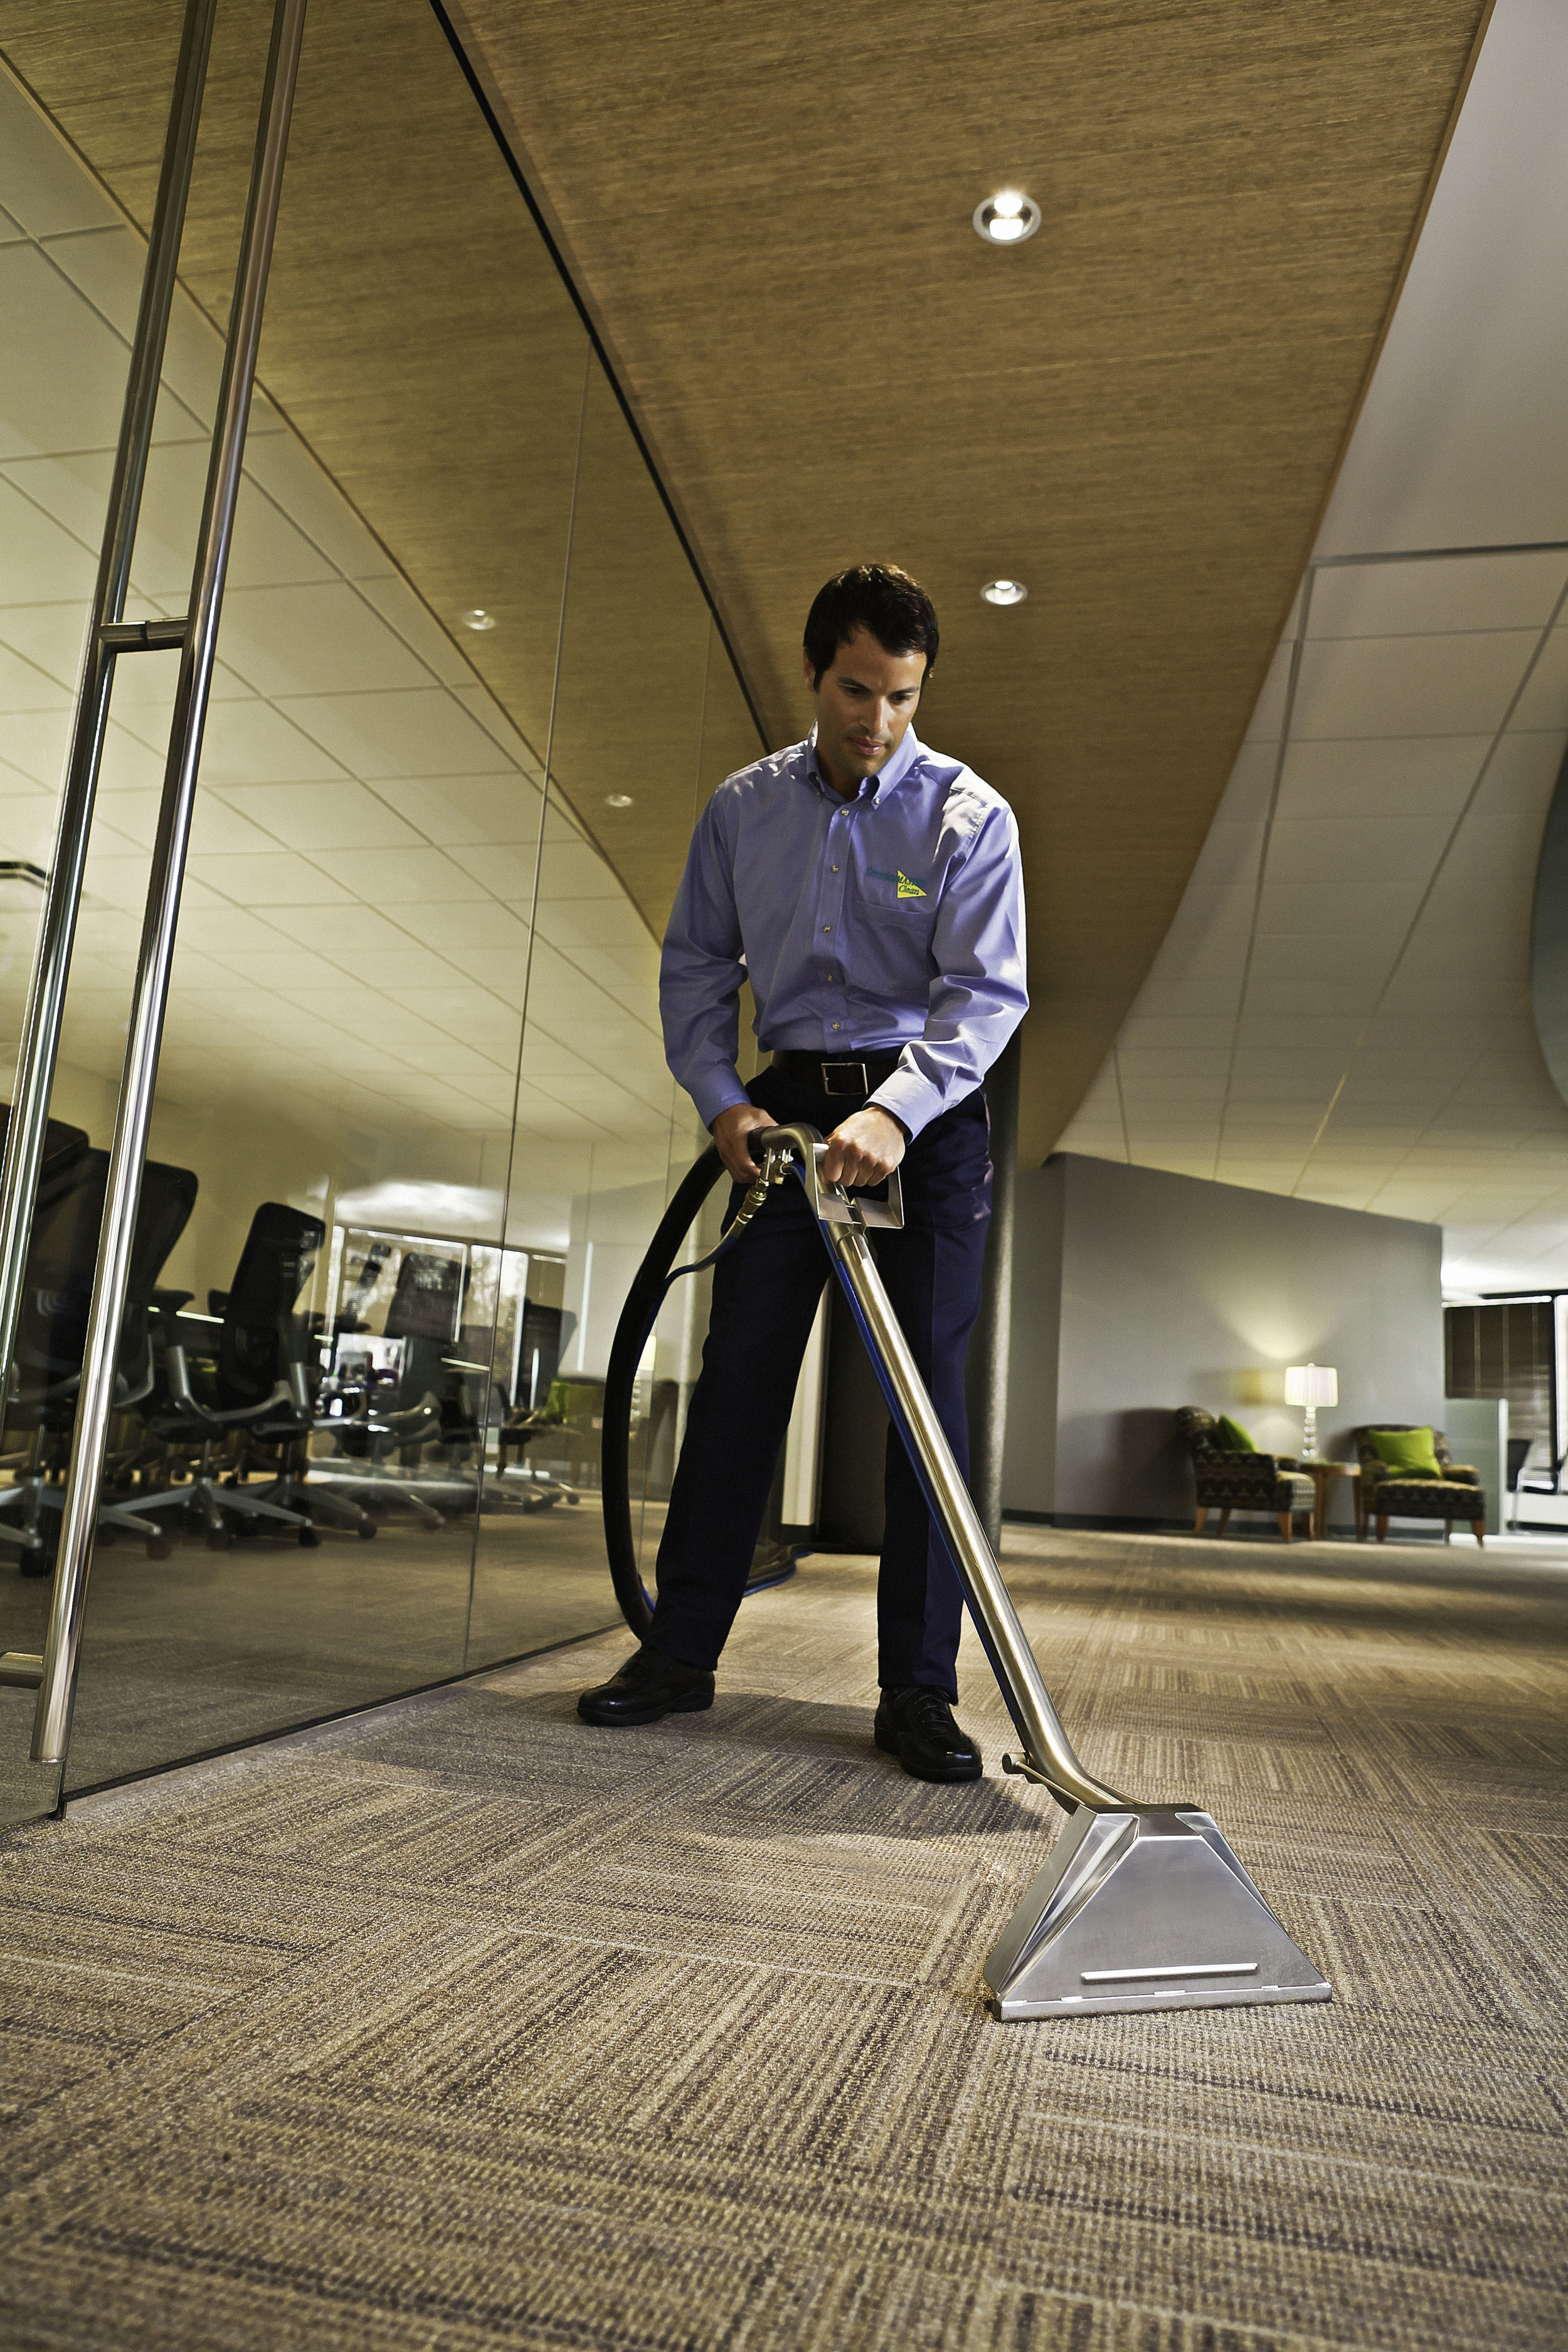 Carpet_extraction_(commercial).jpg